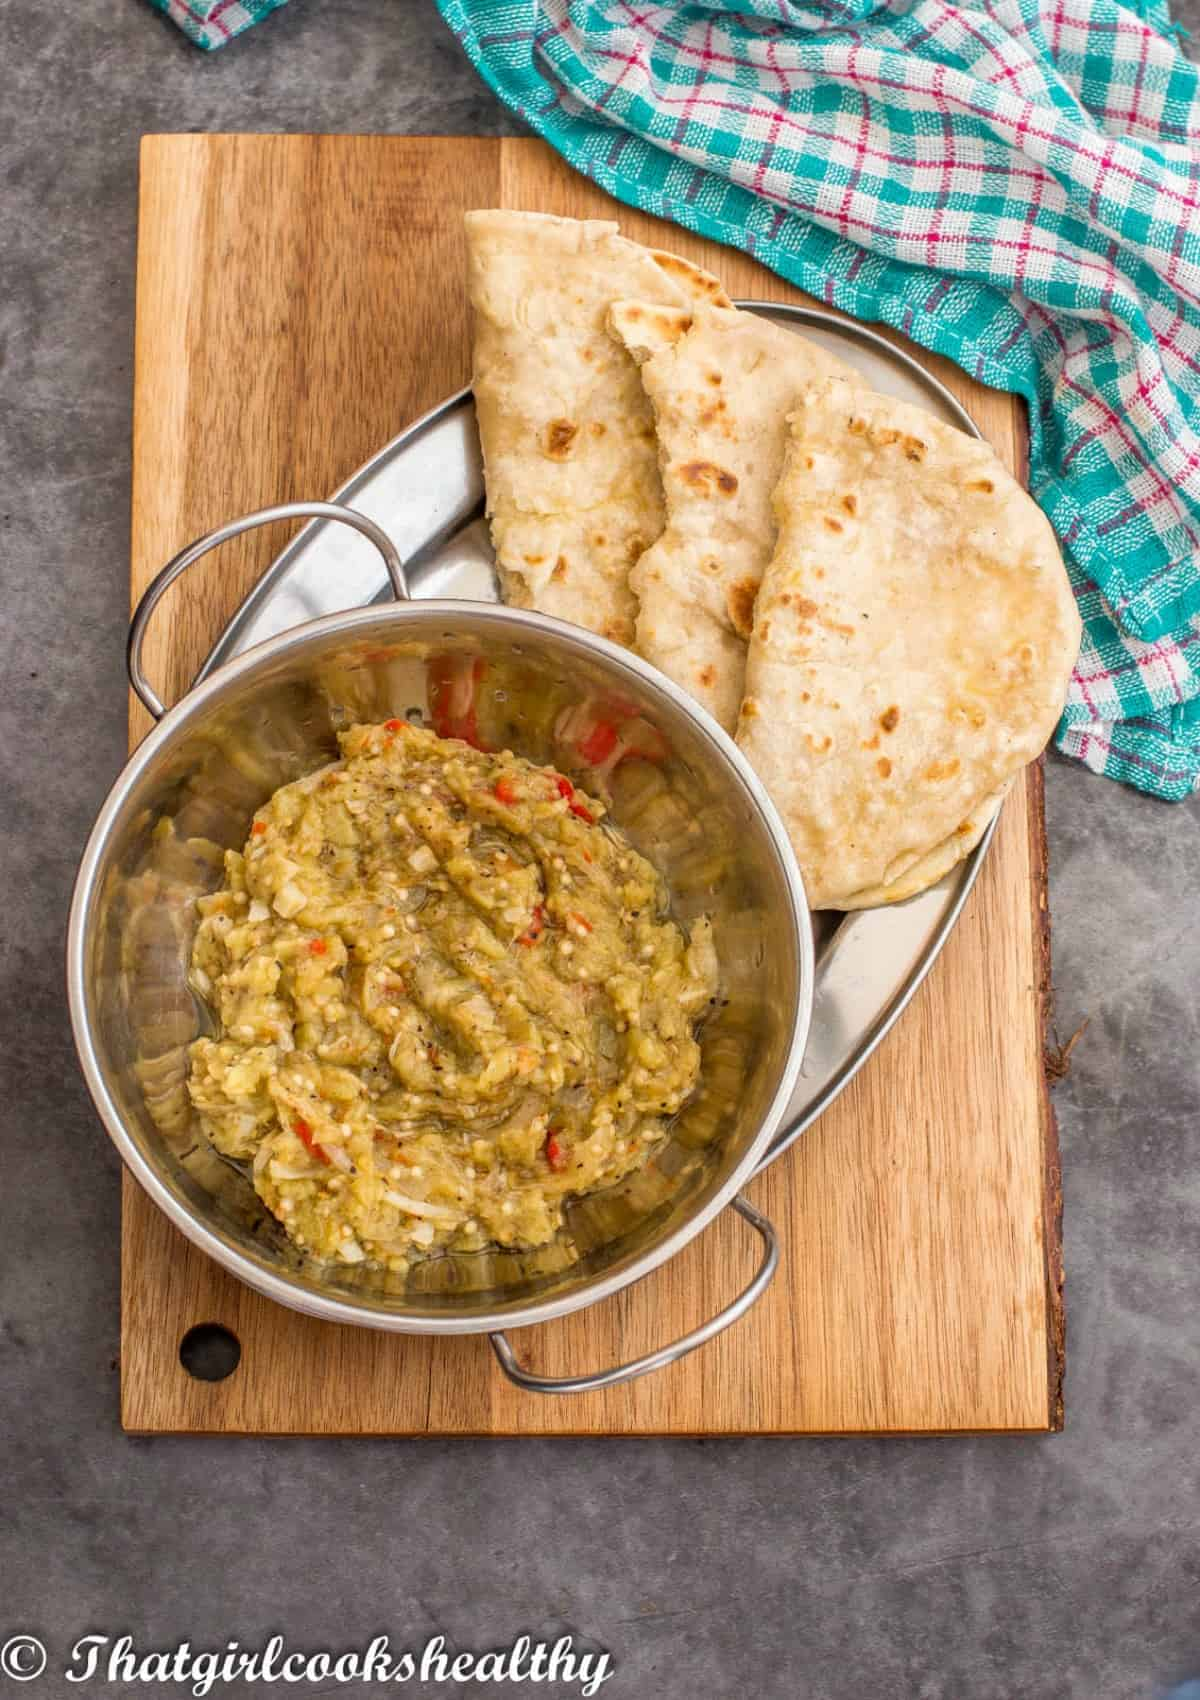 egg plant dip in bowl with roti